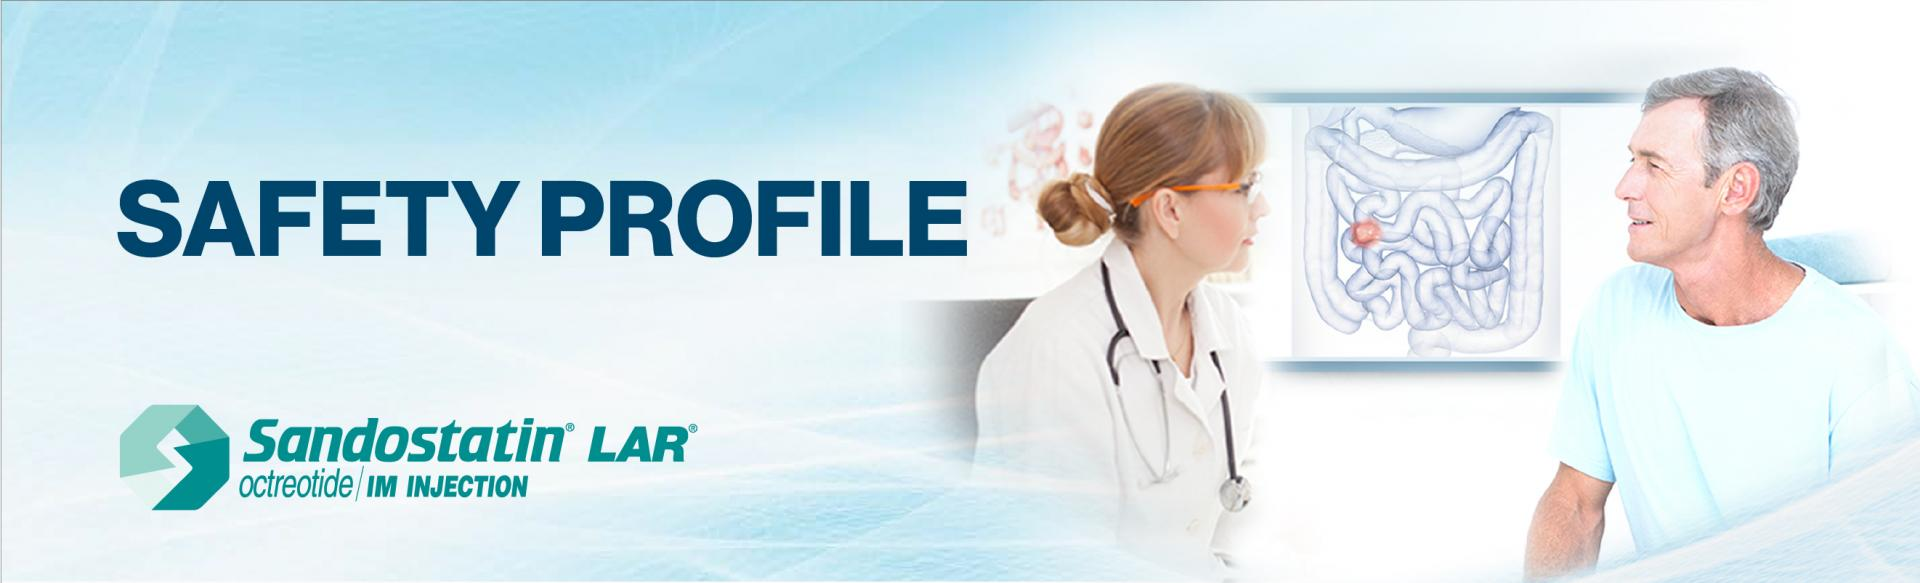 """Top banner: Image of a doctor and patient facing each other, with a picture of the human intenstines on the wall behind them. Superimposed on top of the image is the drug name,  """"Sandostatin LAR octreotide acetate"""" and the brand logo"""